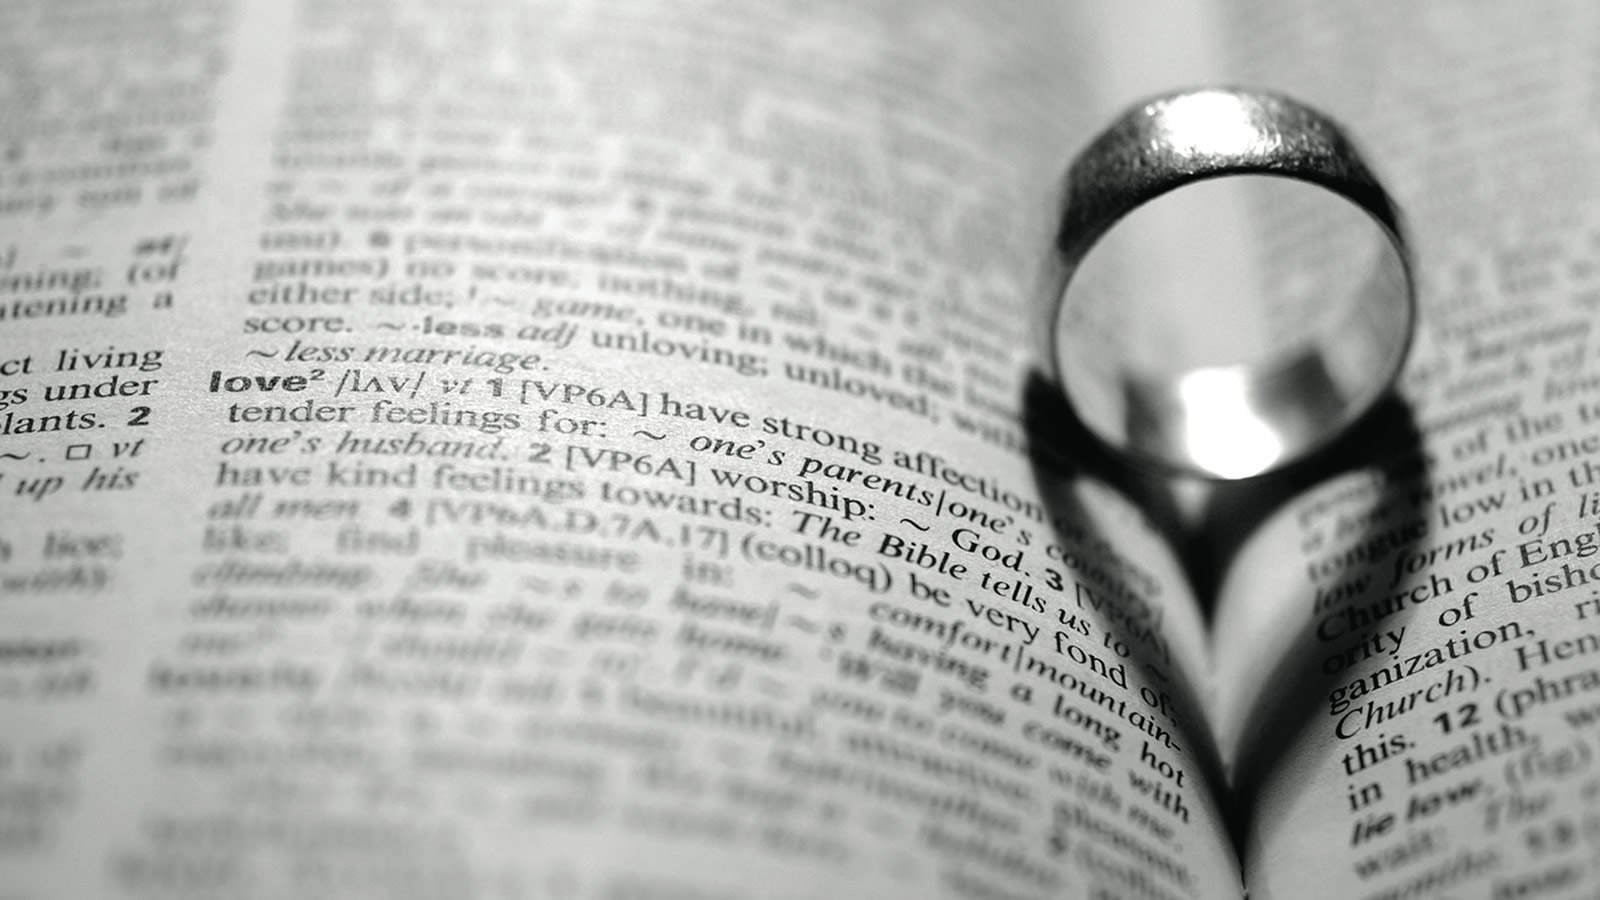 Wedding Ring on Dictionary with Definition of Love